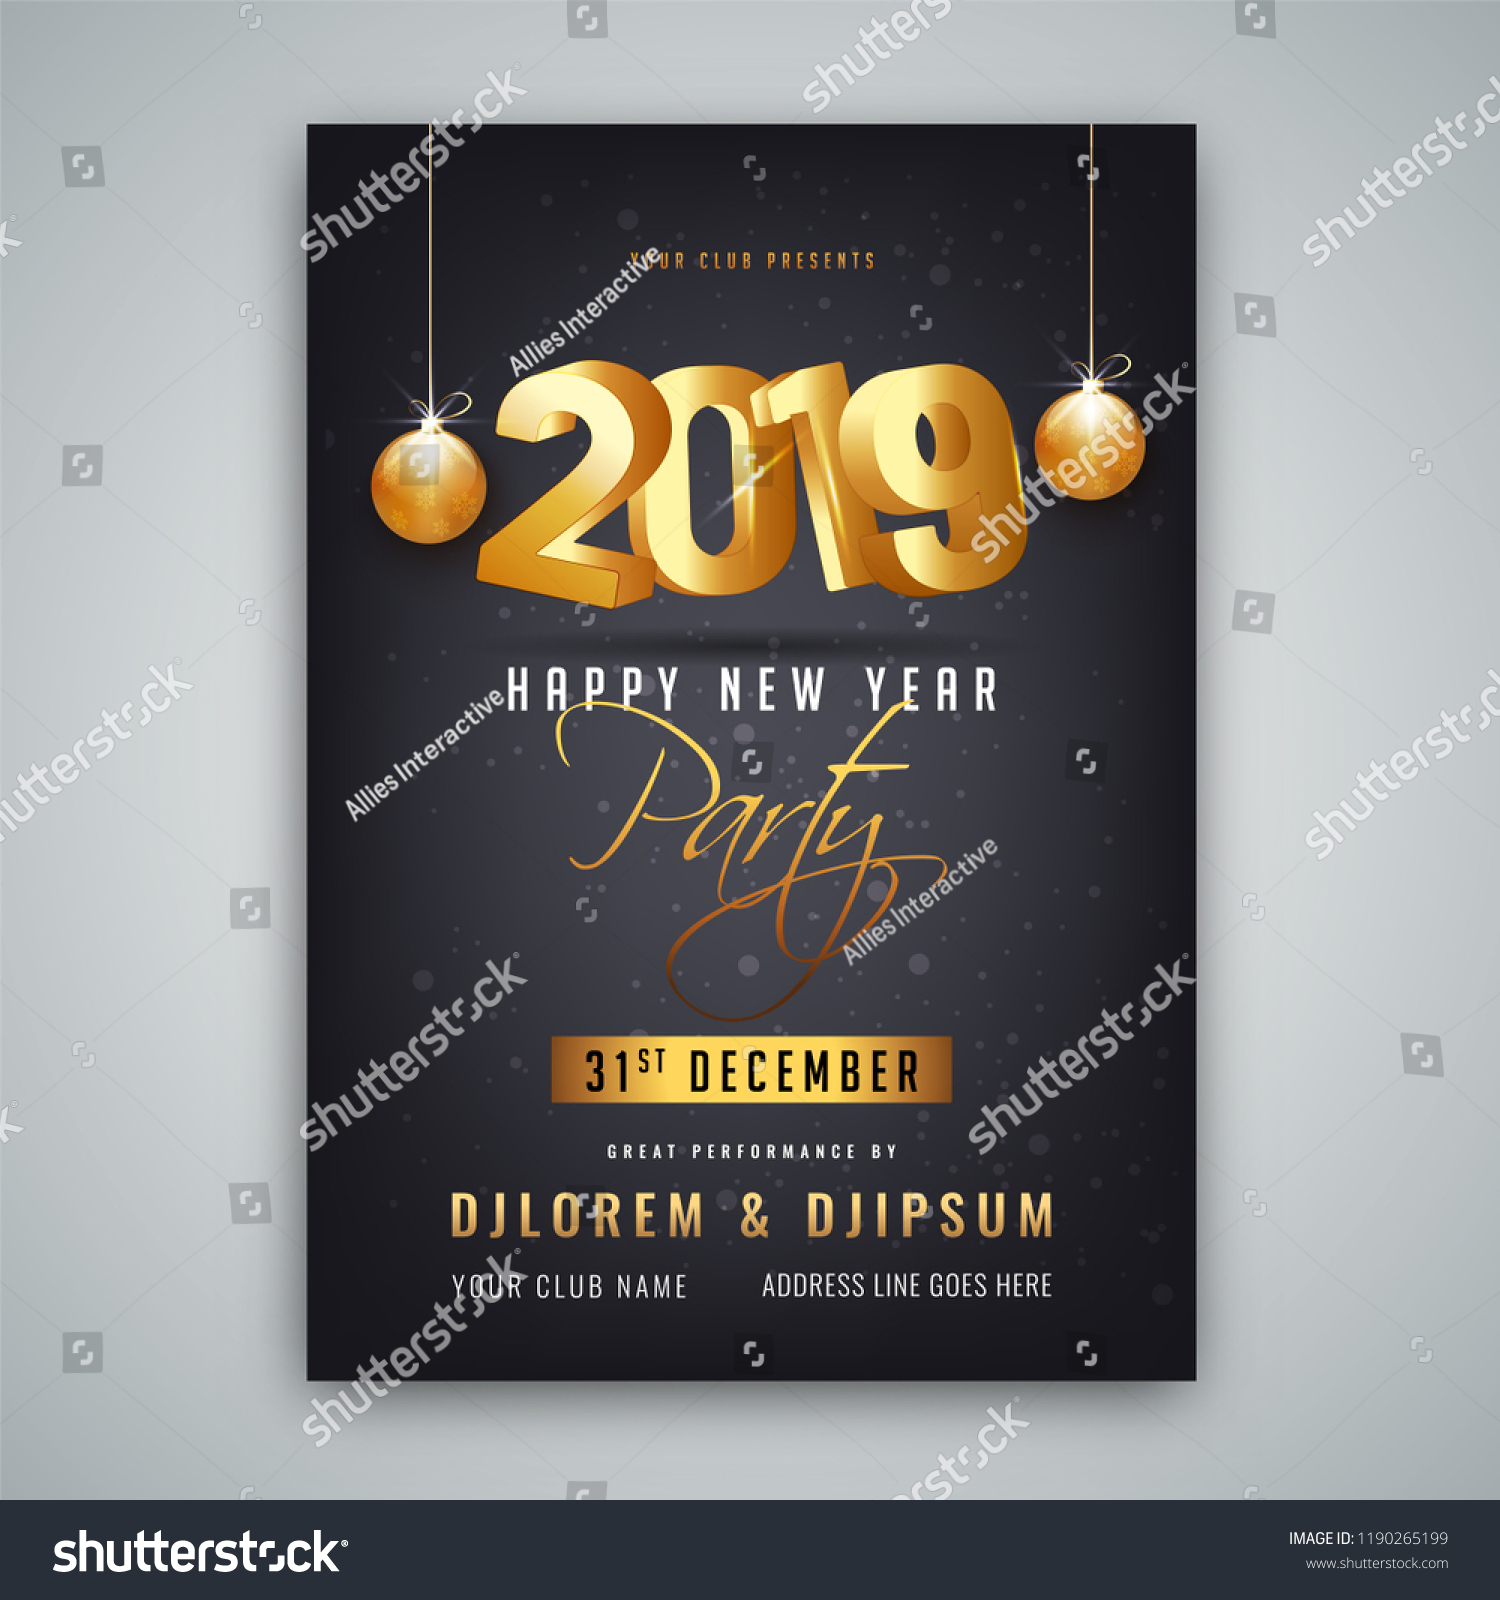 2019 happy new year party invitation card or template design with date and venue details on